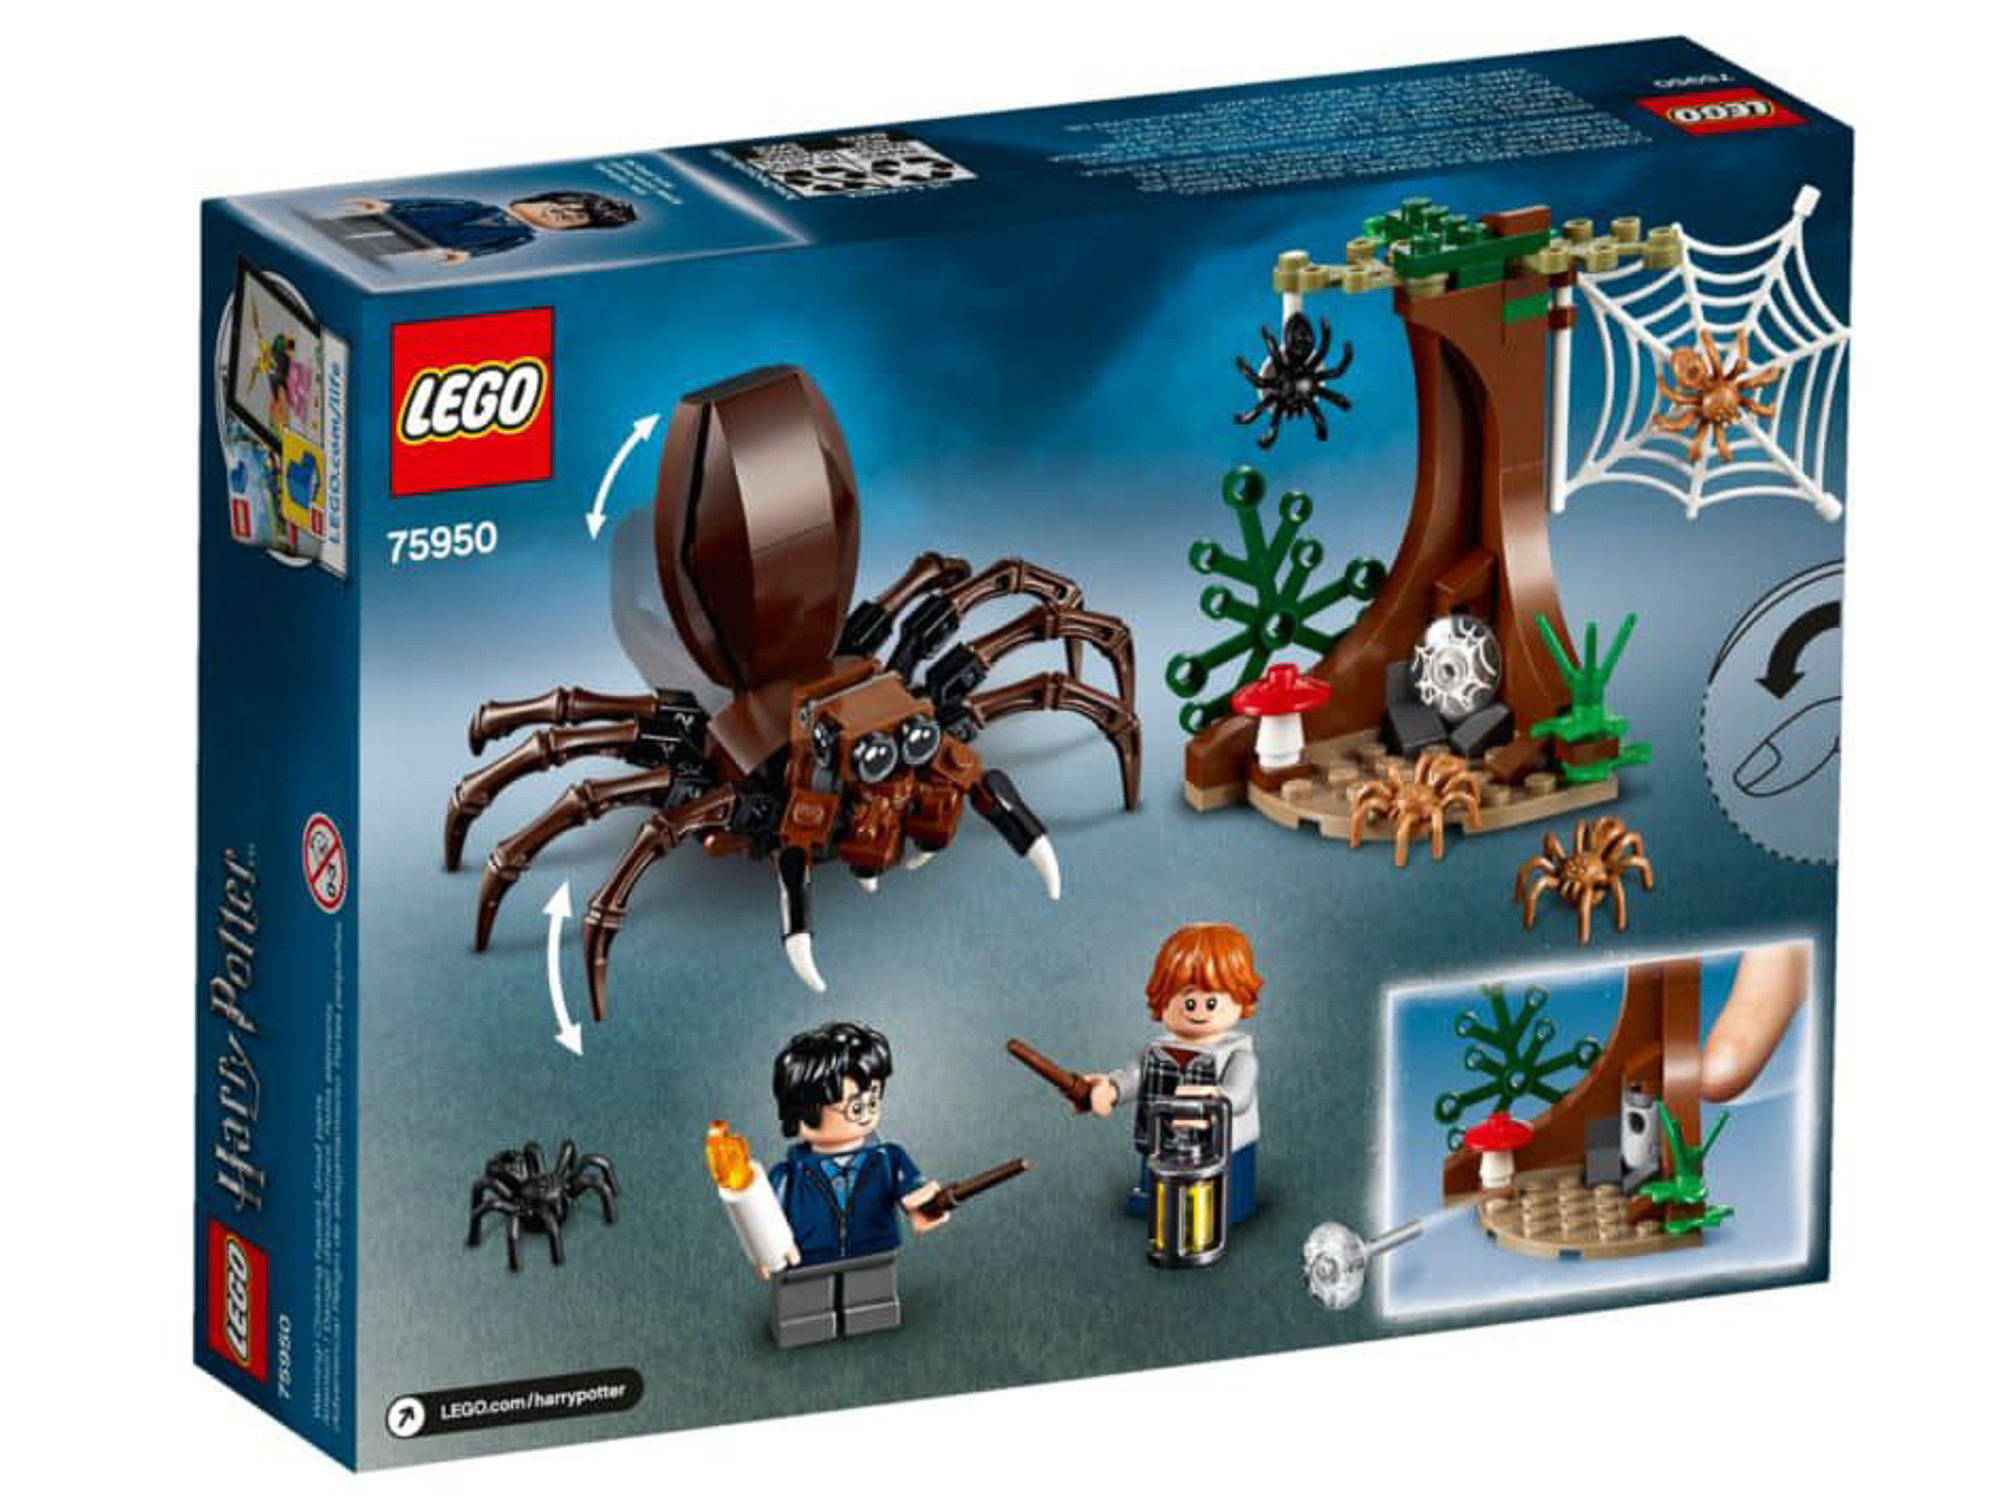 LEGO Harry Potter 75950 Aragogs Lair 02